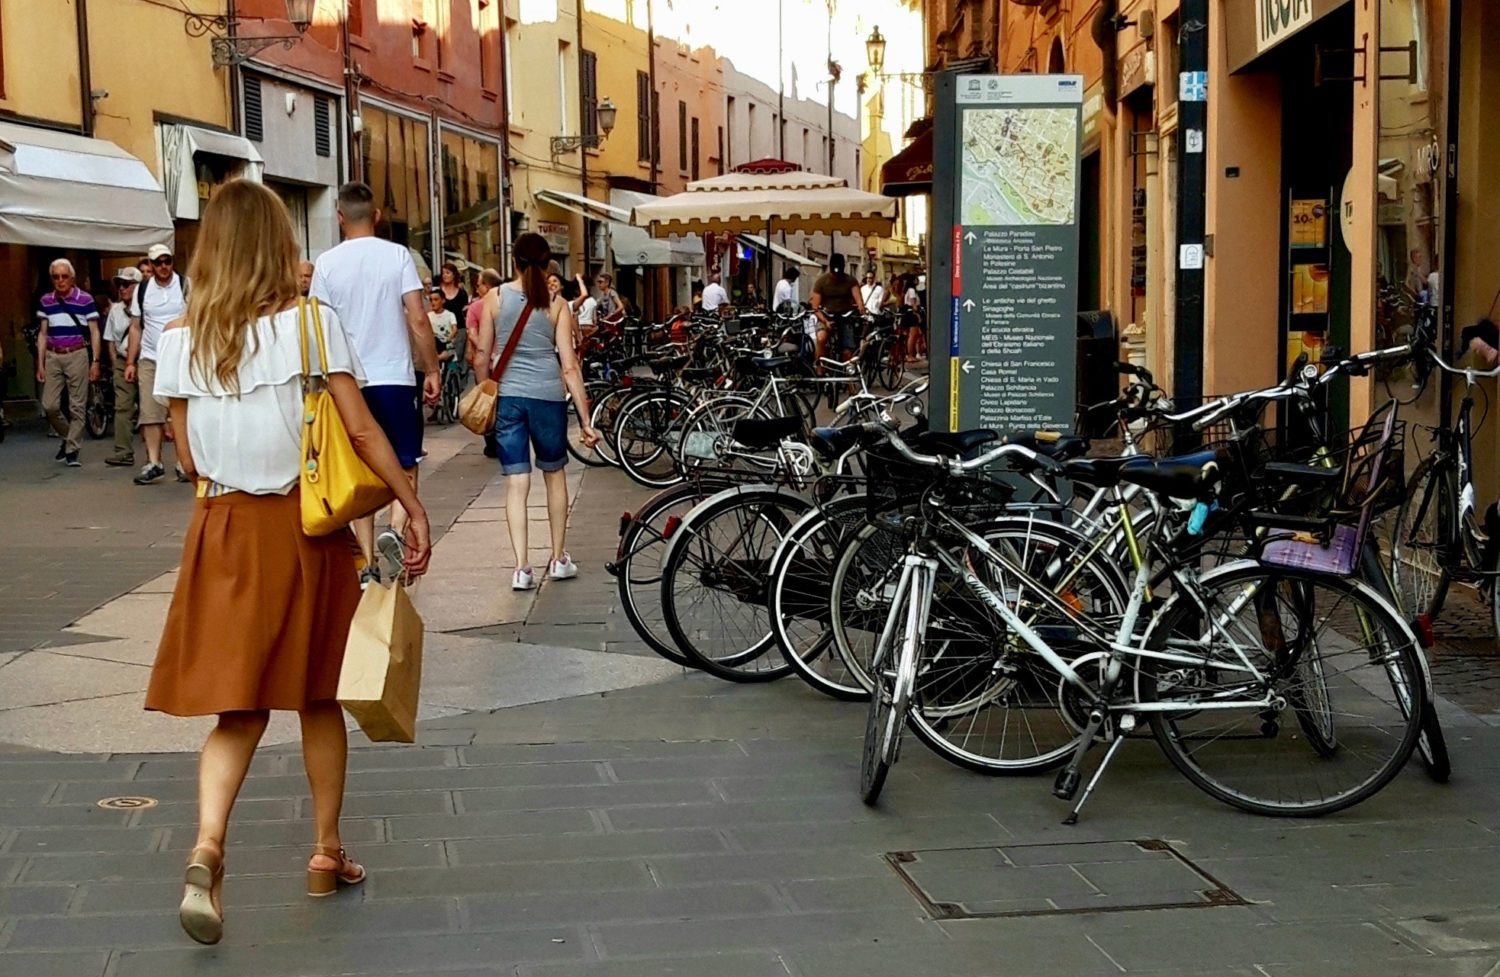 Ferrara is a city of bicycles